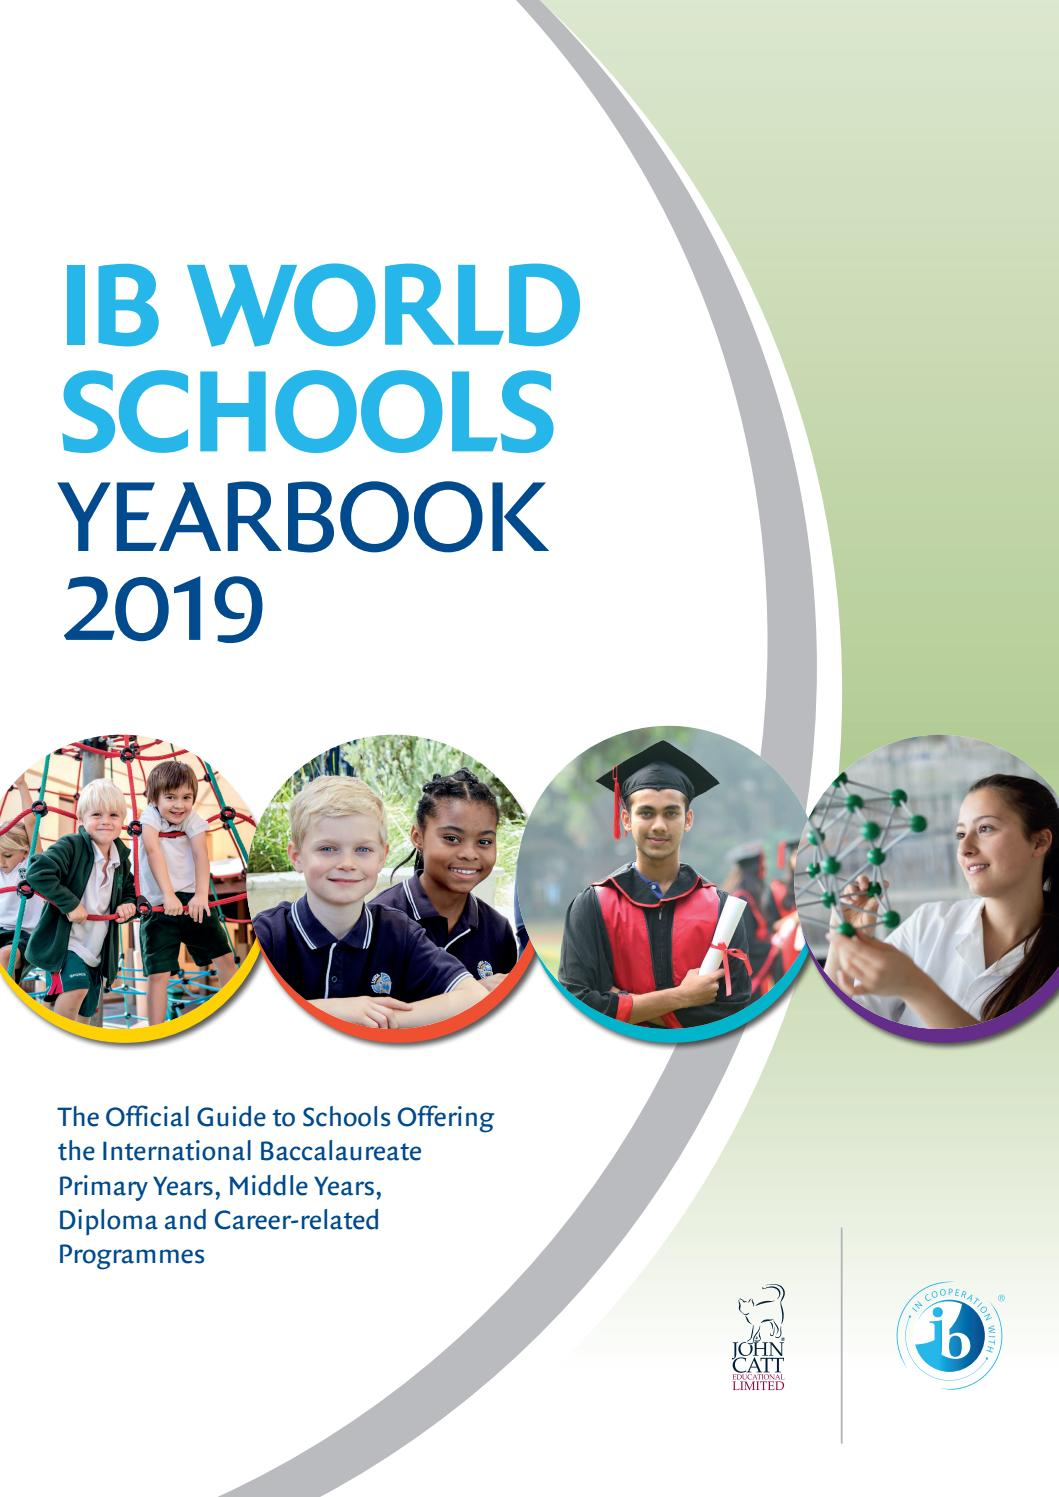 IB World Schools Yearbook 2019 By John Catt Educational Issuu